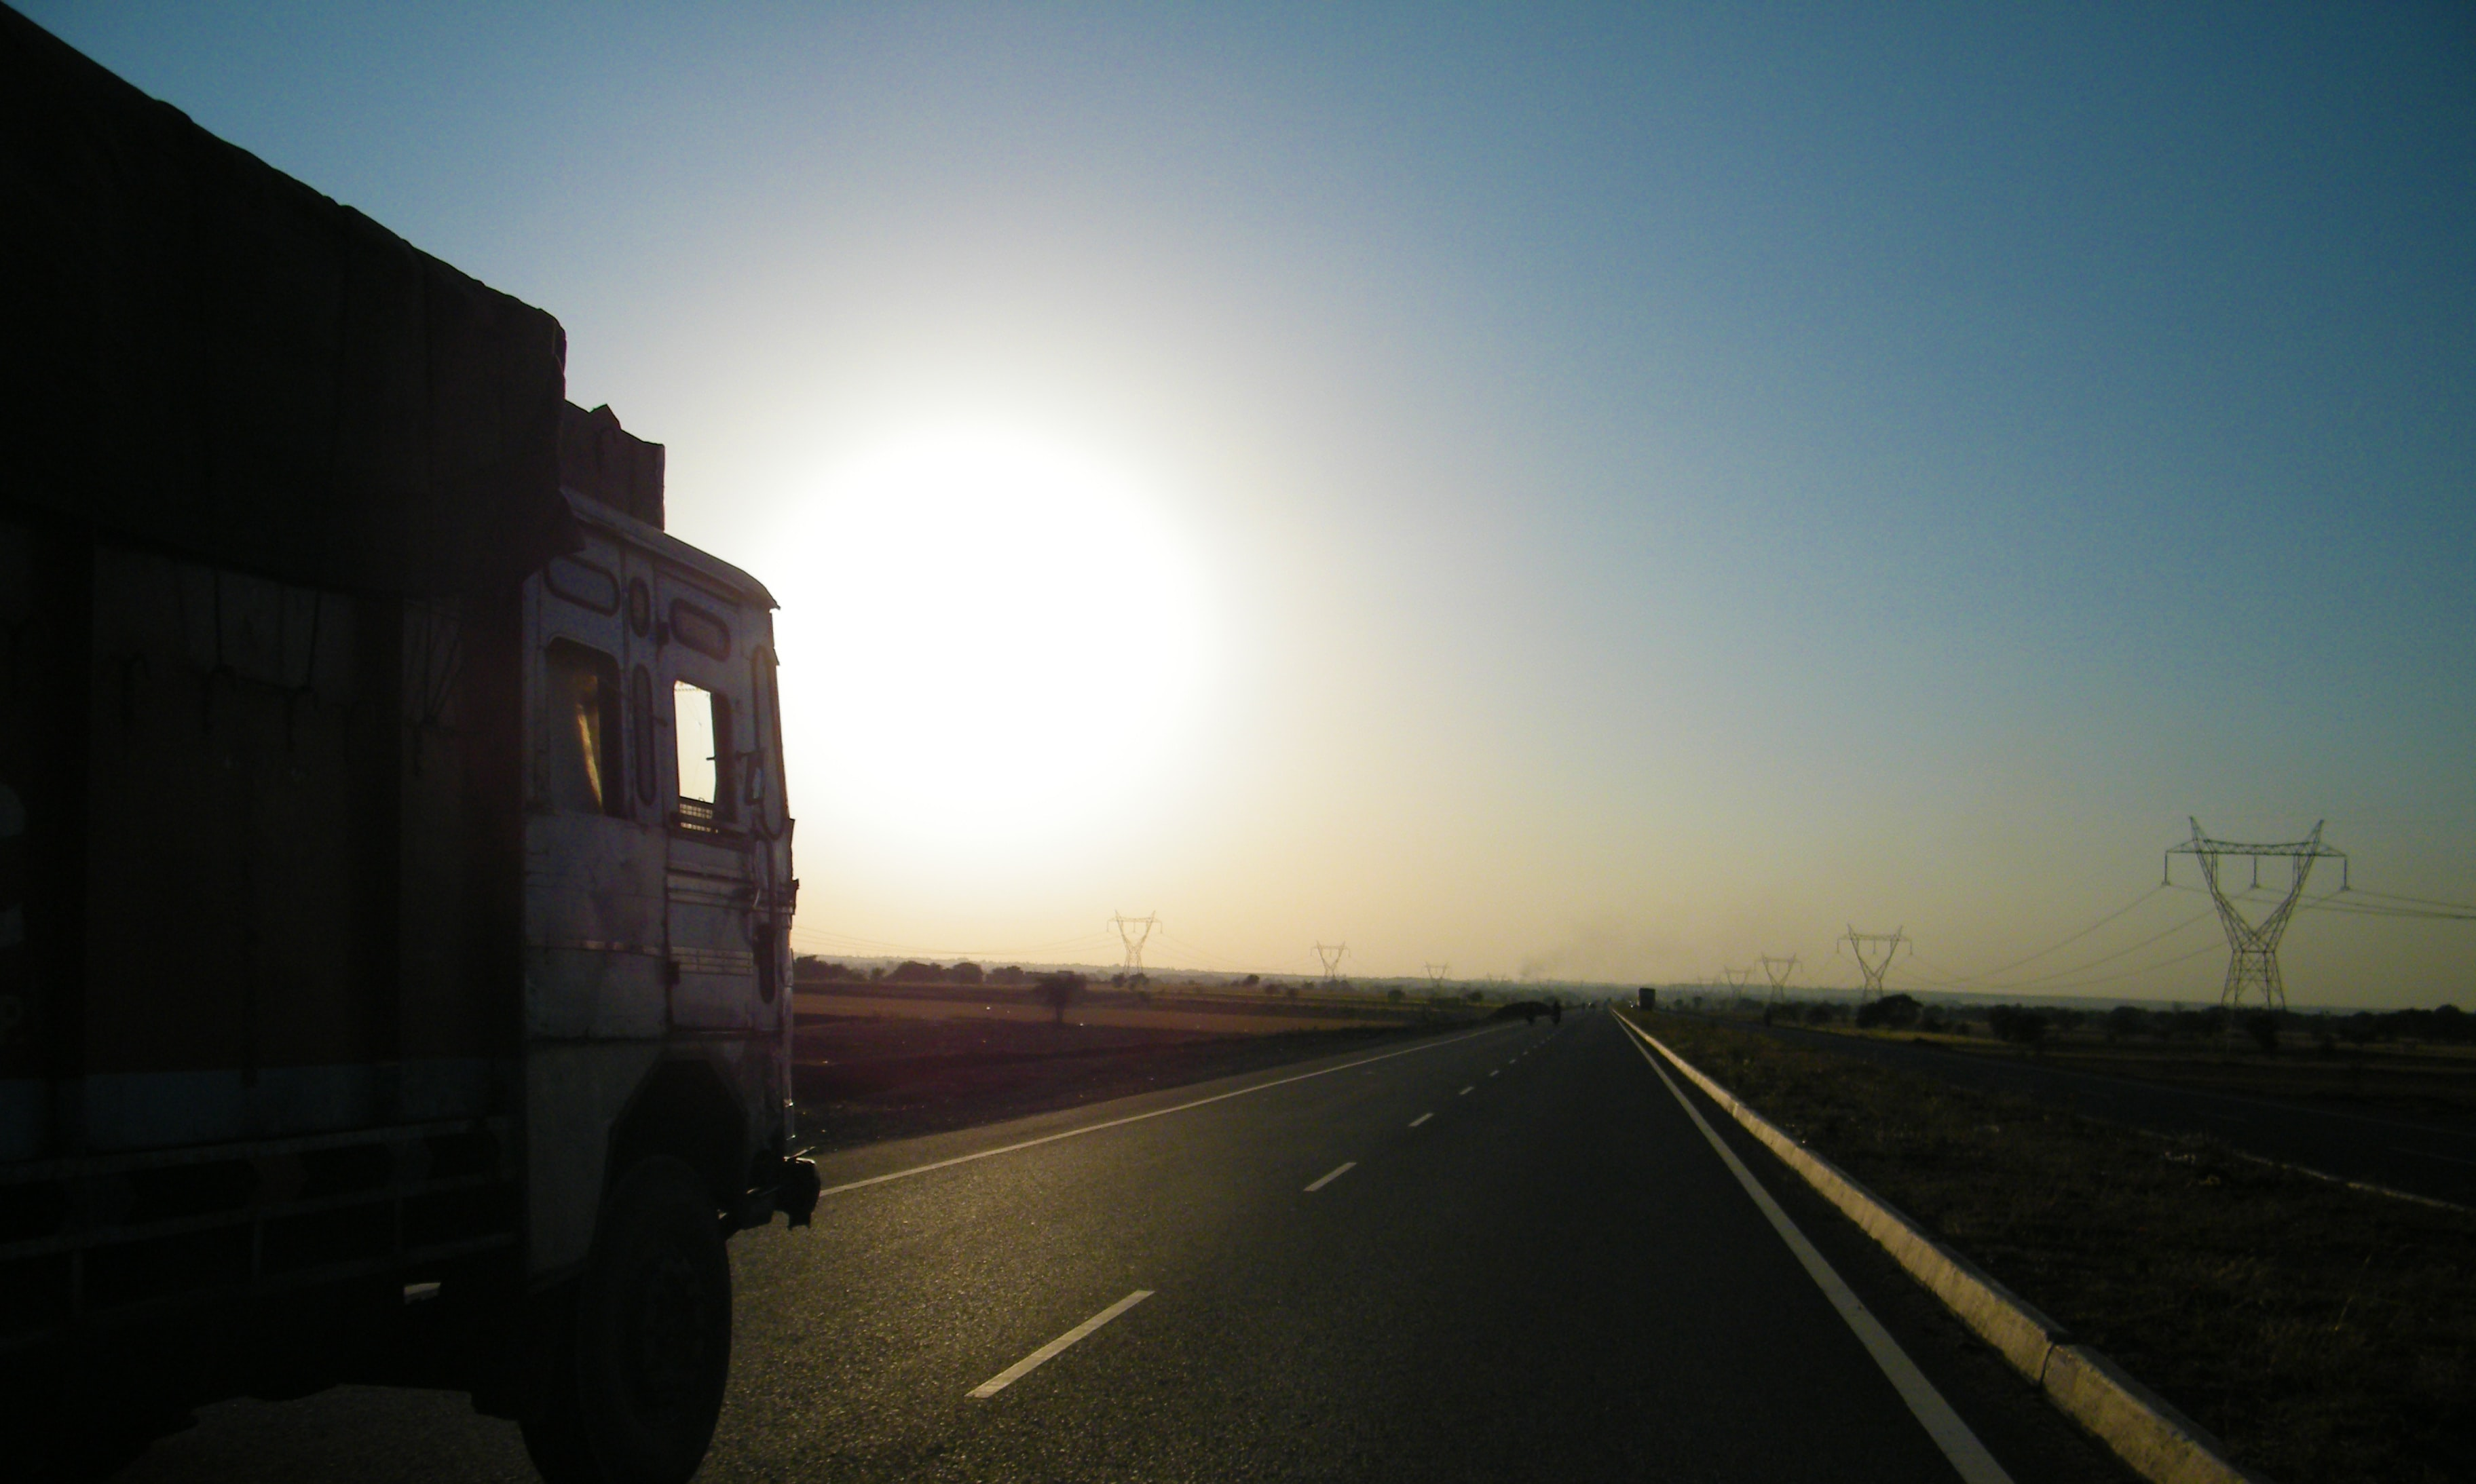 gray truck on asphalt road during sunset